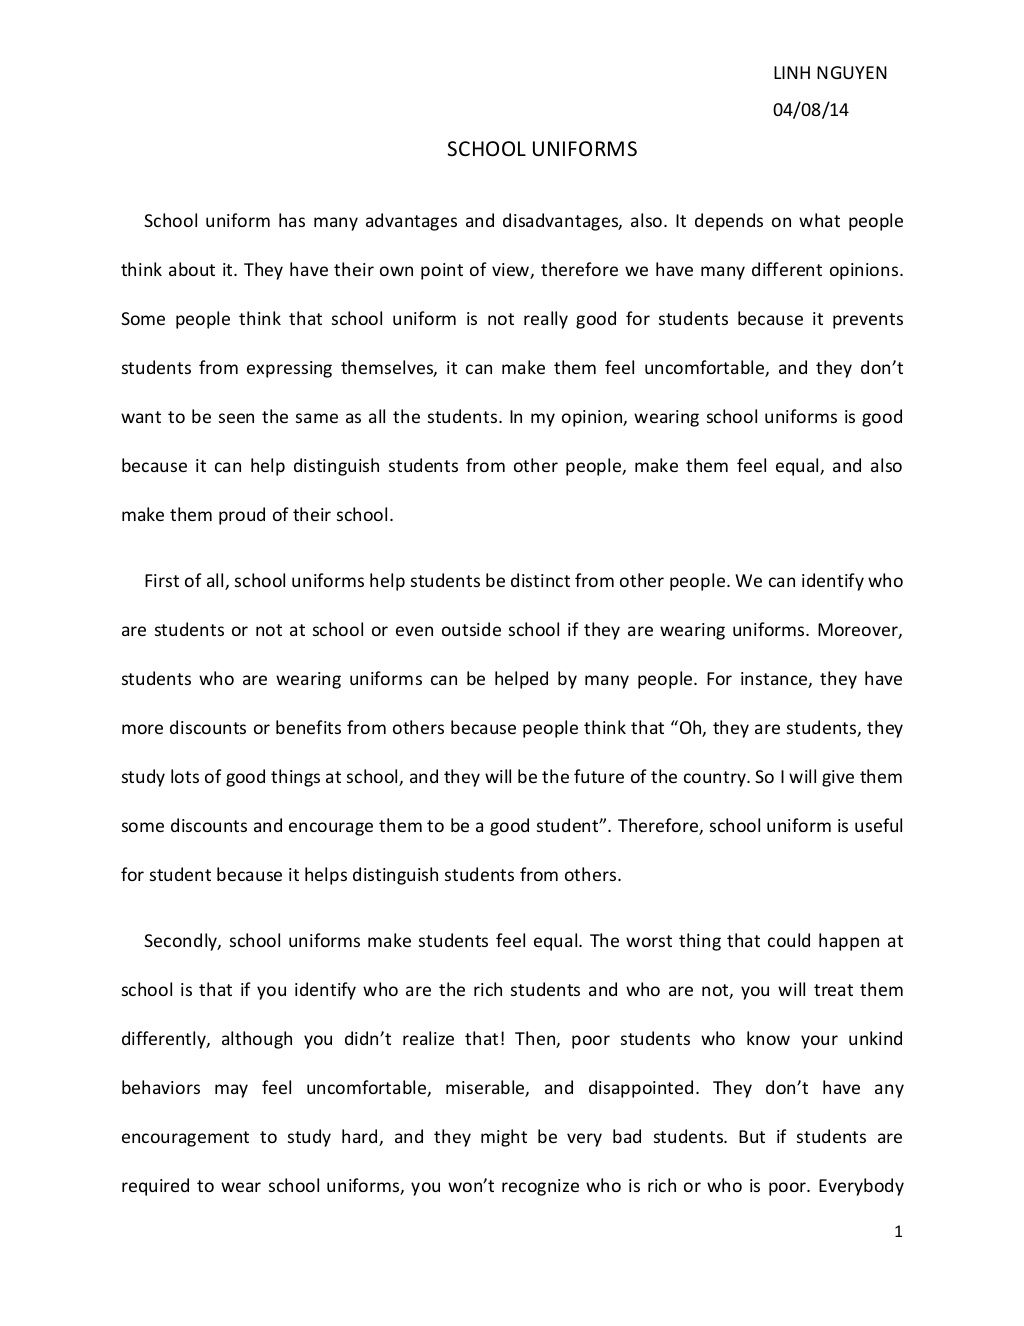 persuasive essay on school uniform